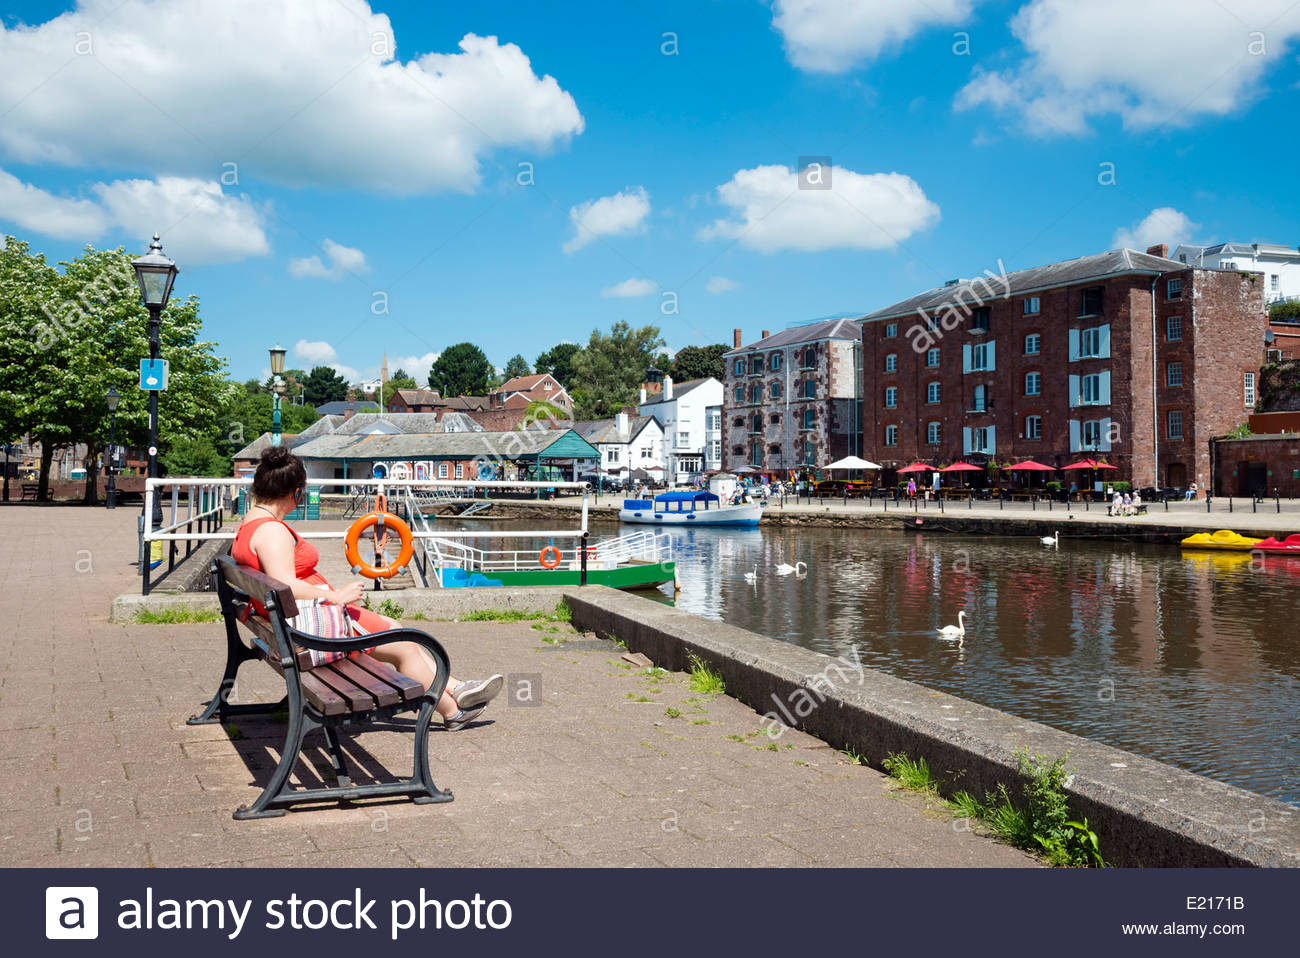 Young woman sitting on a bench at The Quay, Exeter, Devon, UK. - Stock Image